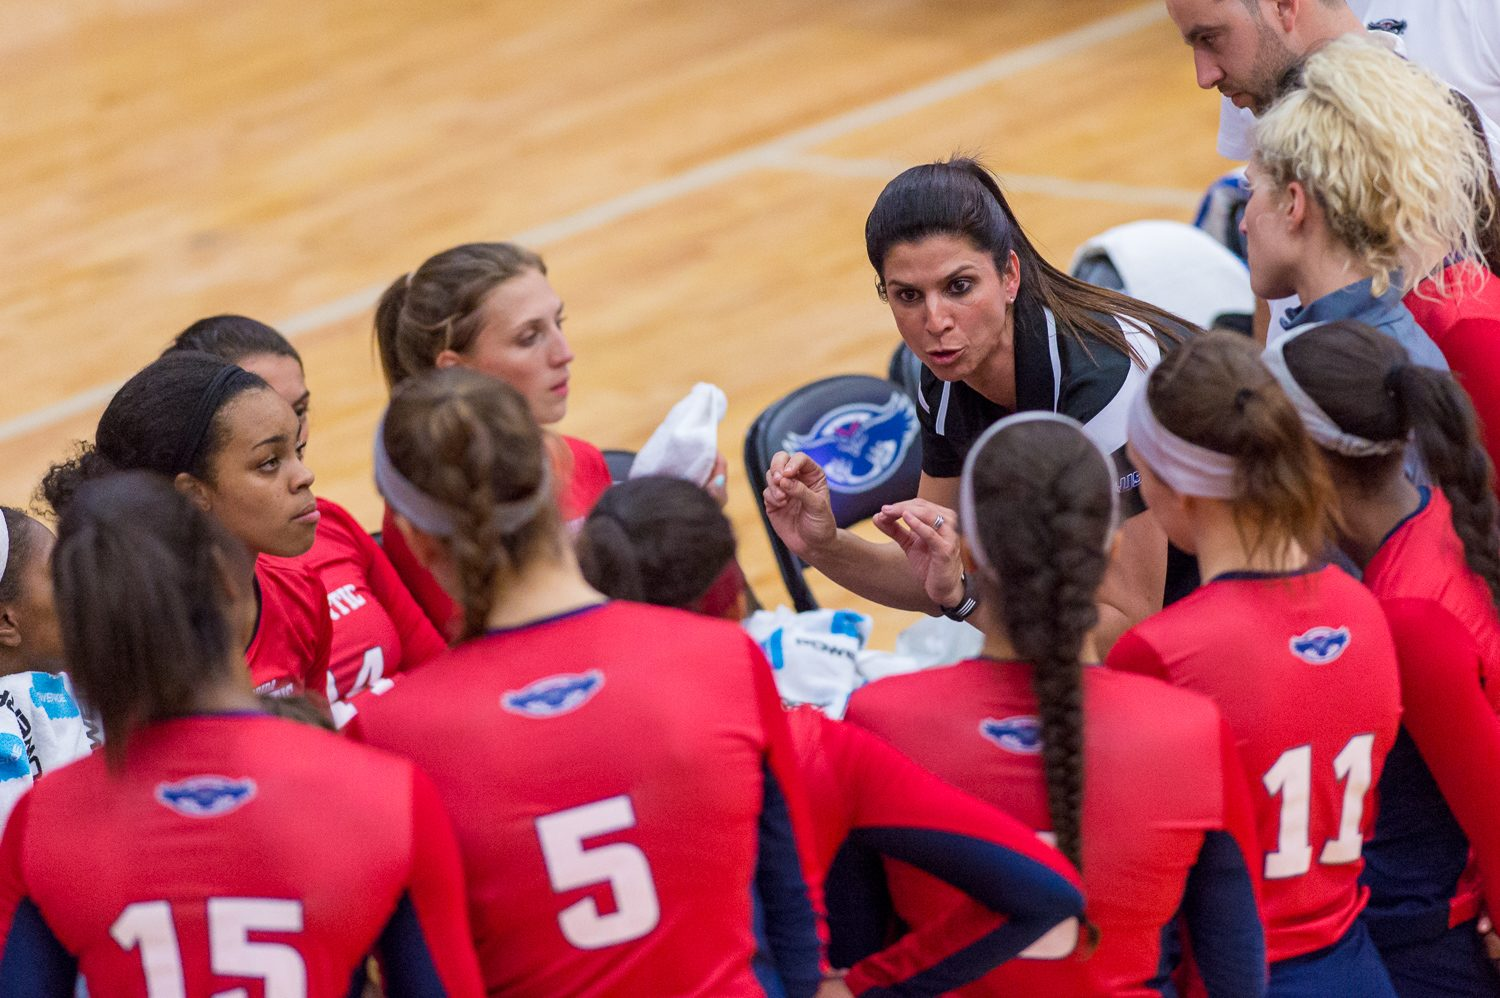 FAU+volleyball+head+coach+Fernanda+Nelson+talks+to+her+players+during+a+timeout.+Photo+by+Max+Jackson+